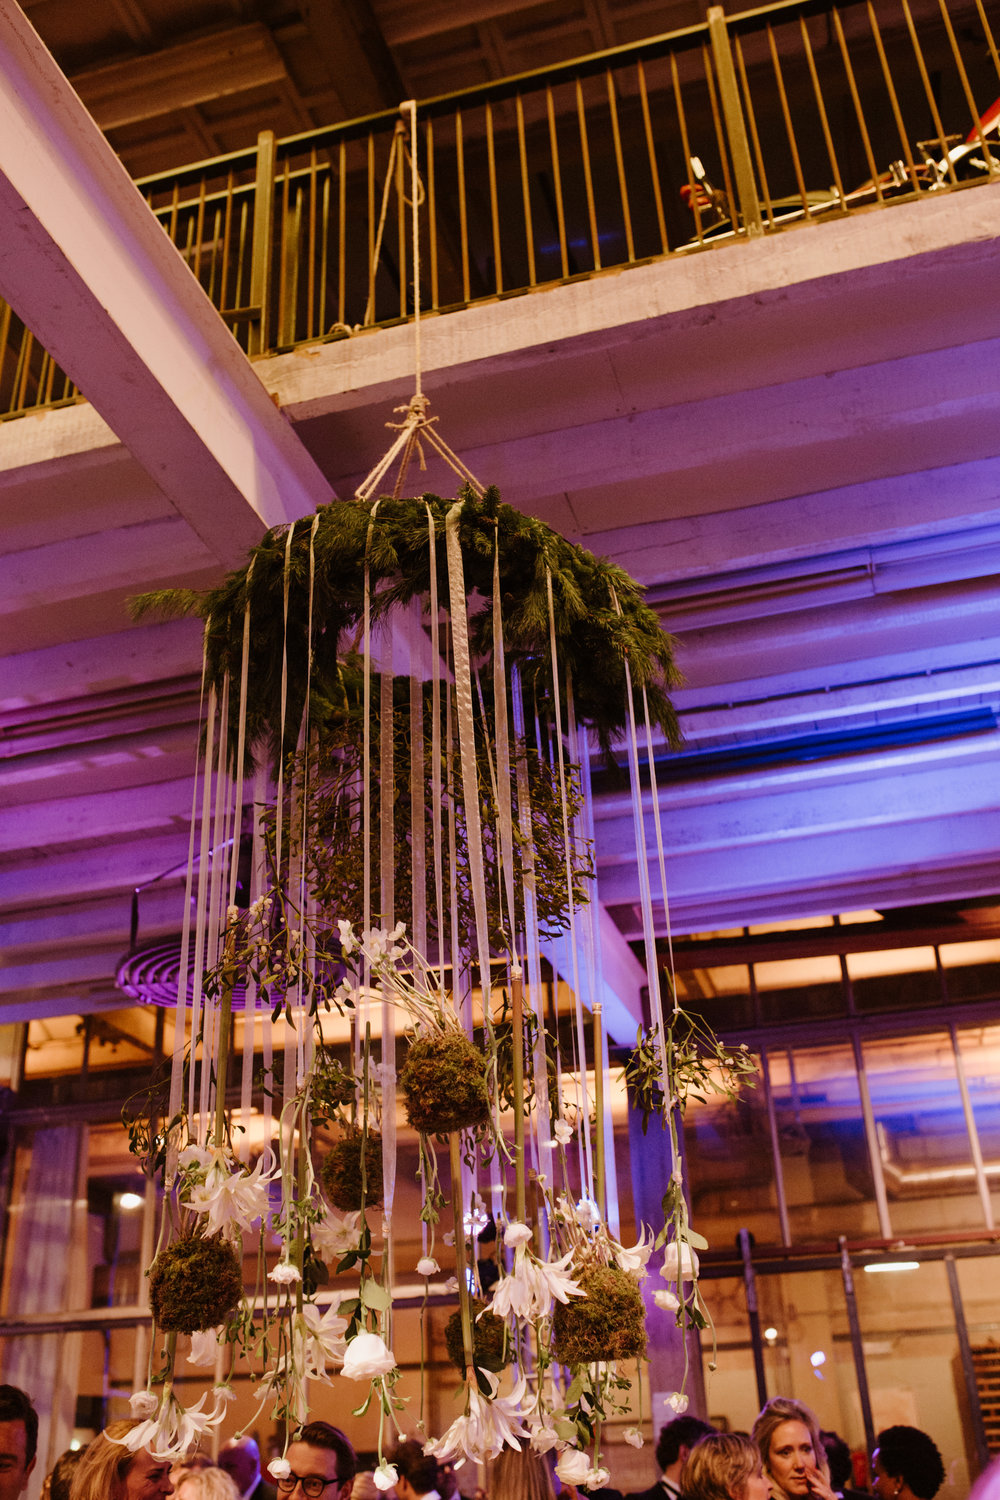 A.P Bloem florist bloemist Amsterdam Kerkstraat wedding Bruiloft trouwen event kerst Christmas gezellig liefde love Ido evenement styling winter trouwinspiratie weddinginspiration weddinggoals shesaid yes arrangement hotel de goudfazant chandelier